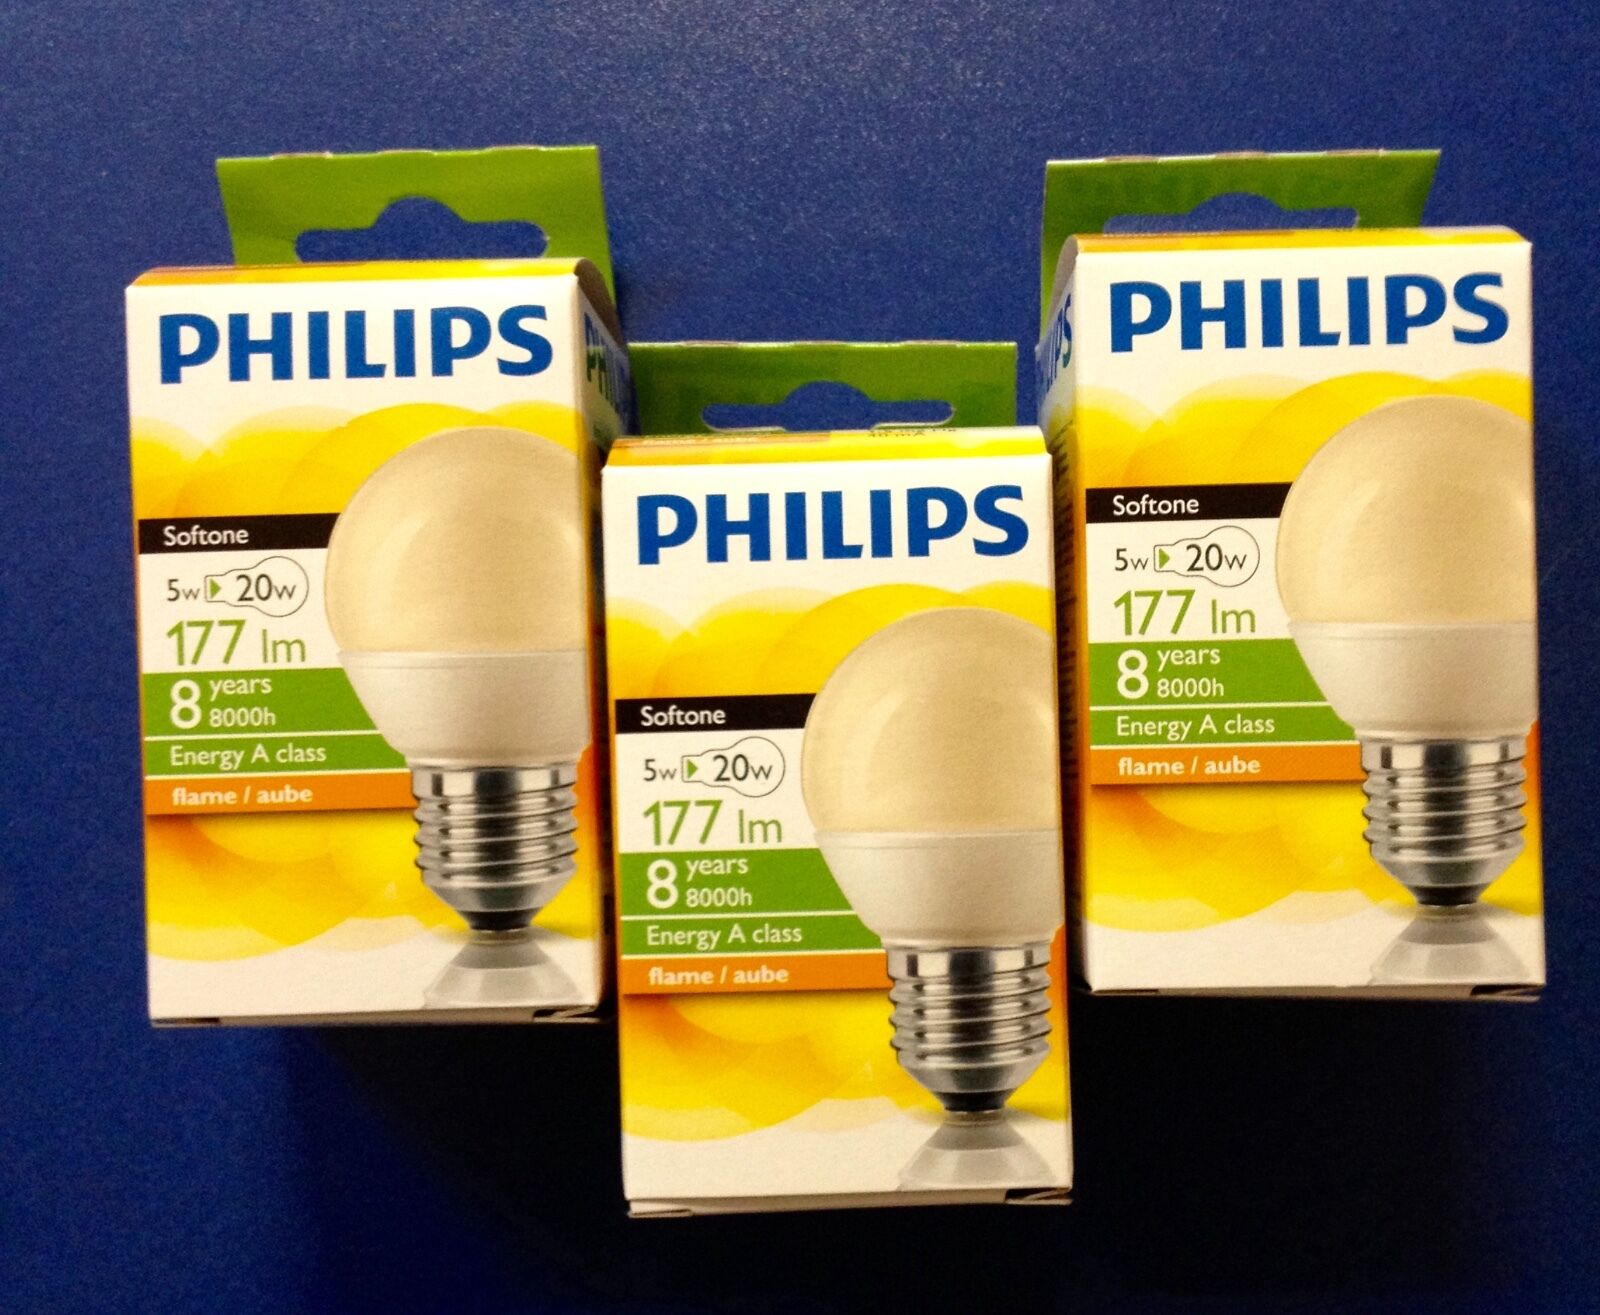 Philips Softone Flame Lighting Philips Energy Softone Flame Economy In Drop Shaped E27 5w